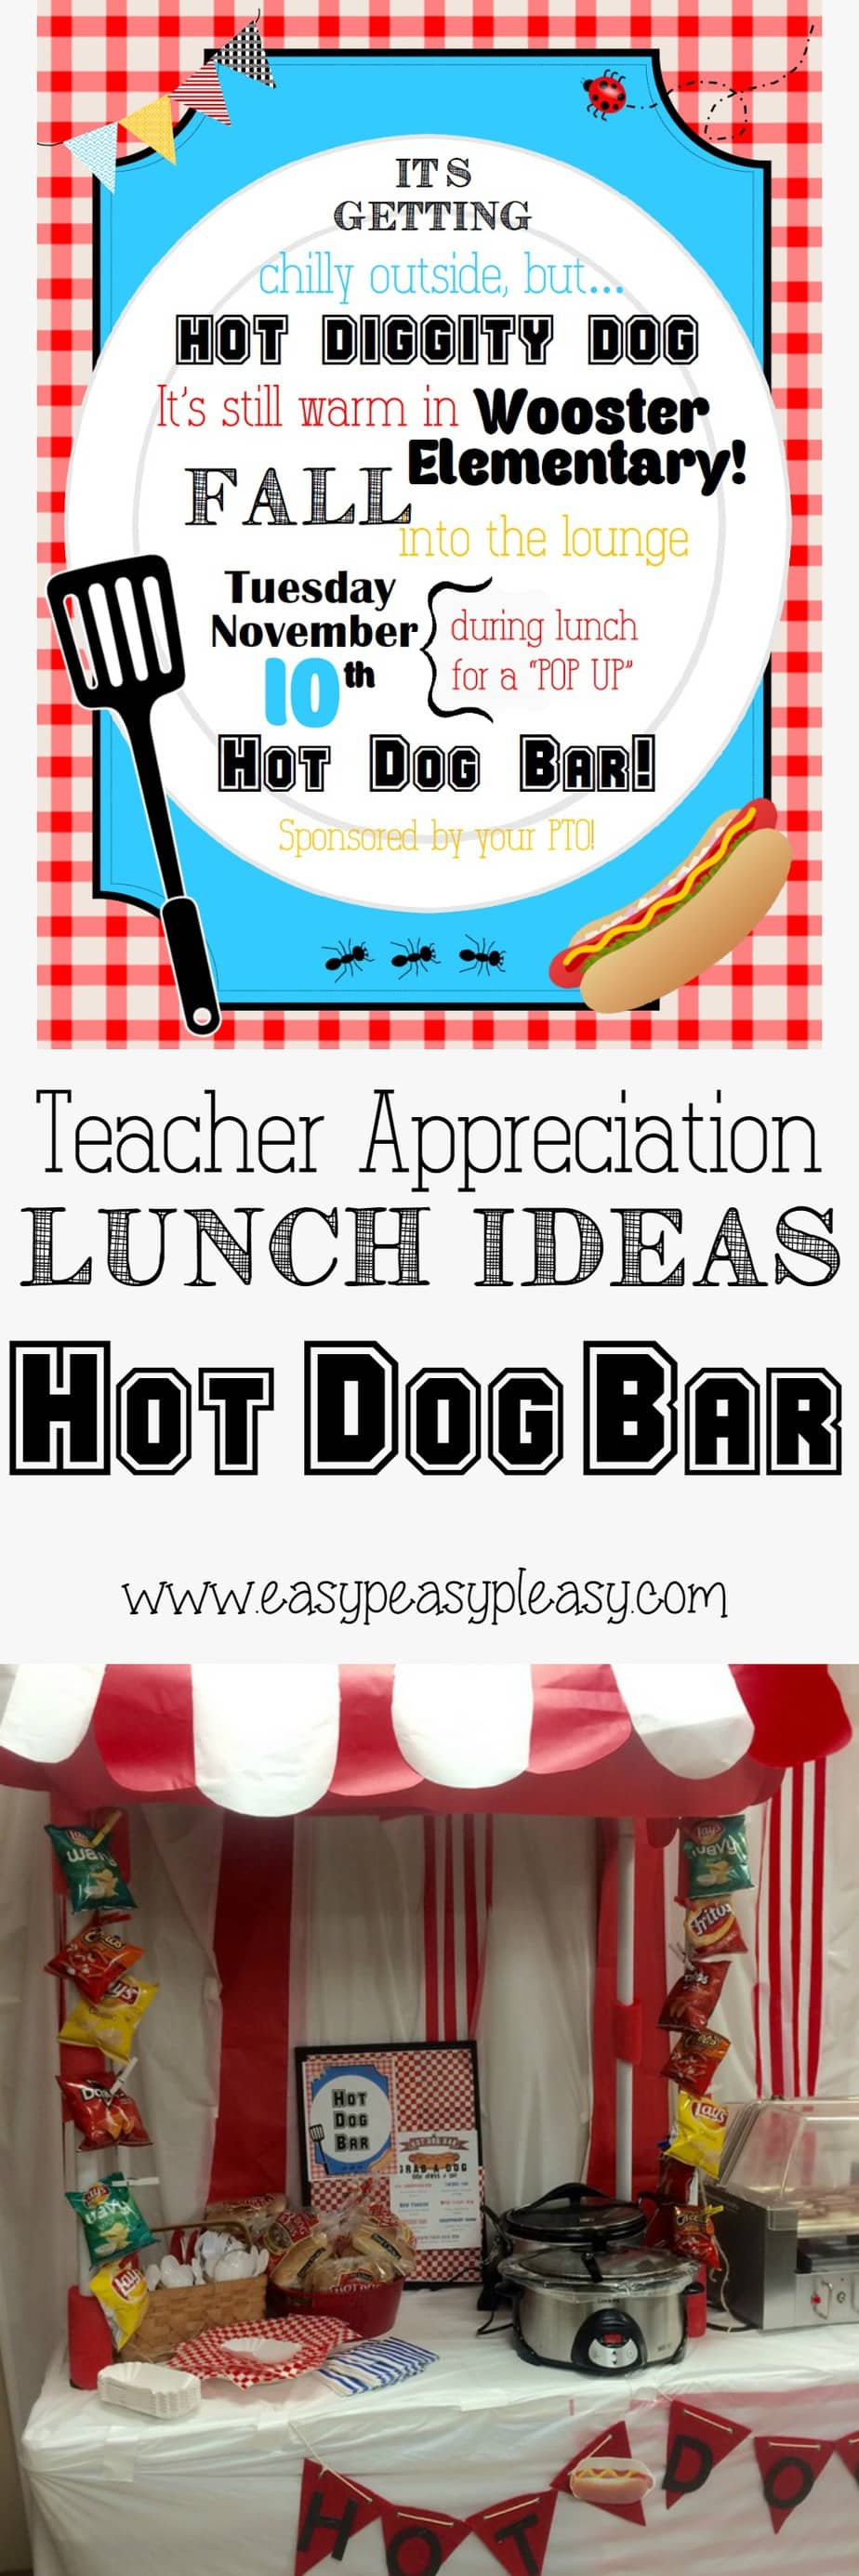 photograph relating to Hot Diggity Dog Bar Free Printable titled Instructor Appreciation Lunch Suggestions Sizzling Canine Bar - Very simple Peasy Pleasy